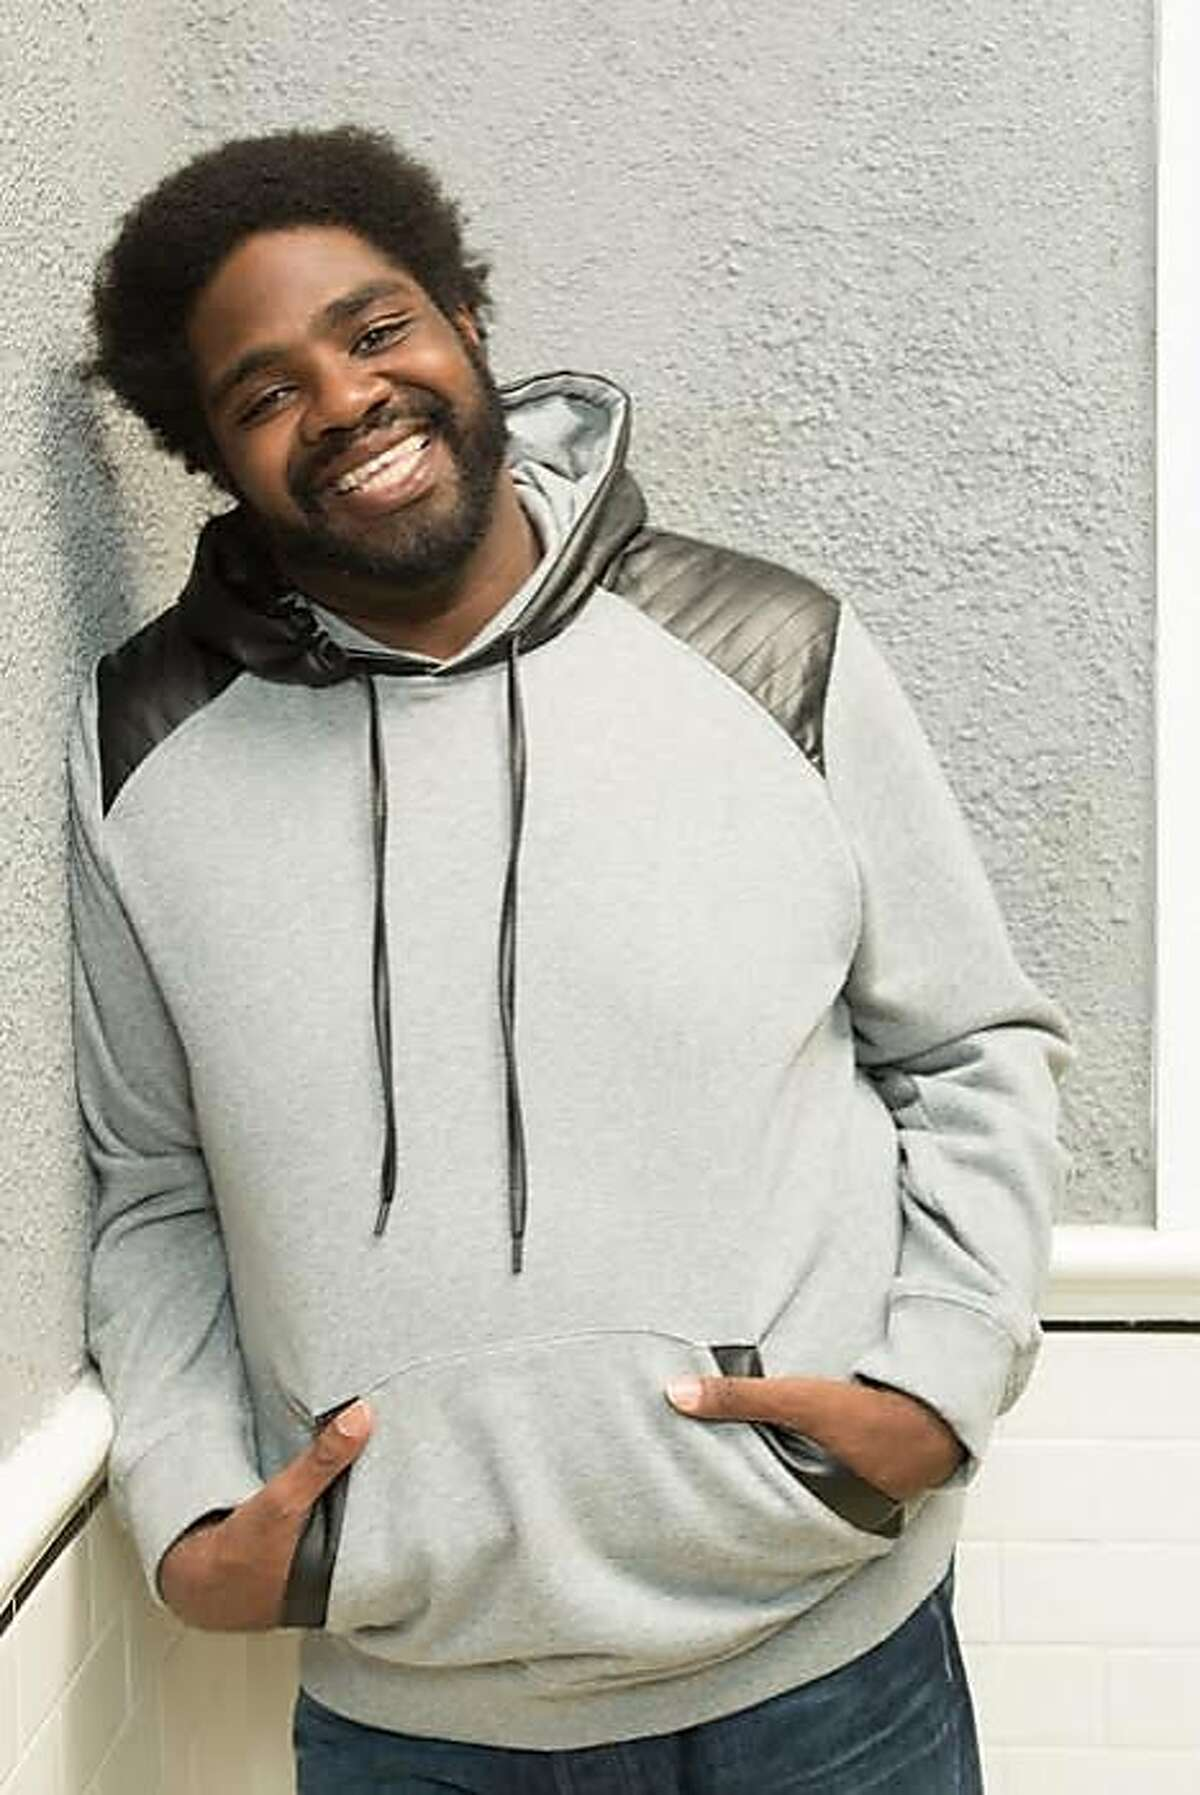 """Ronald Funches performed at San Antonio's LOL Comedy Club, but according to a series of his tweets, no one was laughing """"out loud"""" during his shows."""